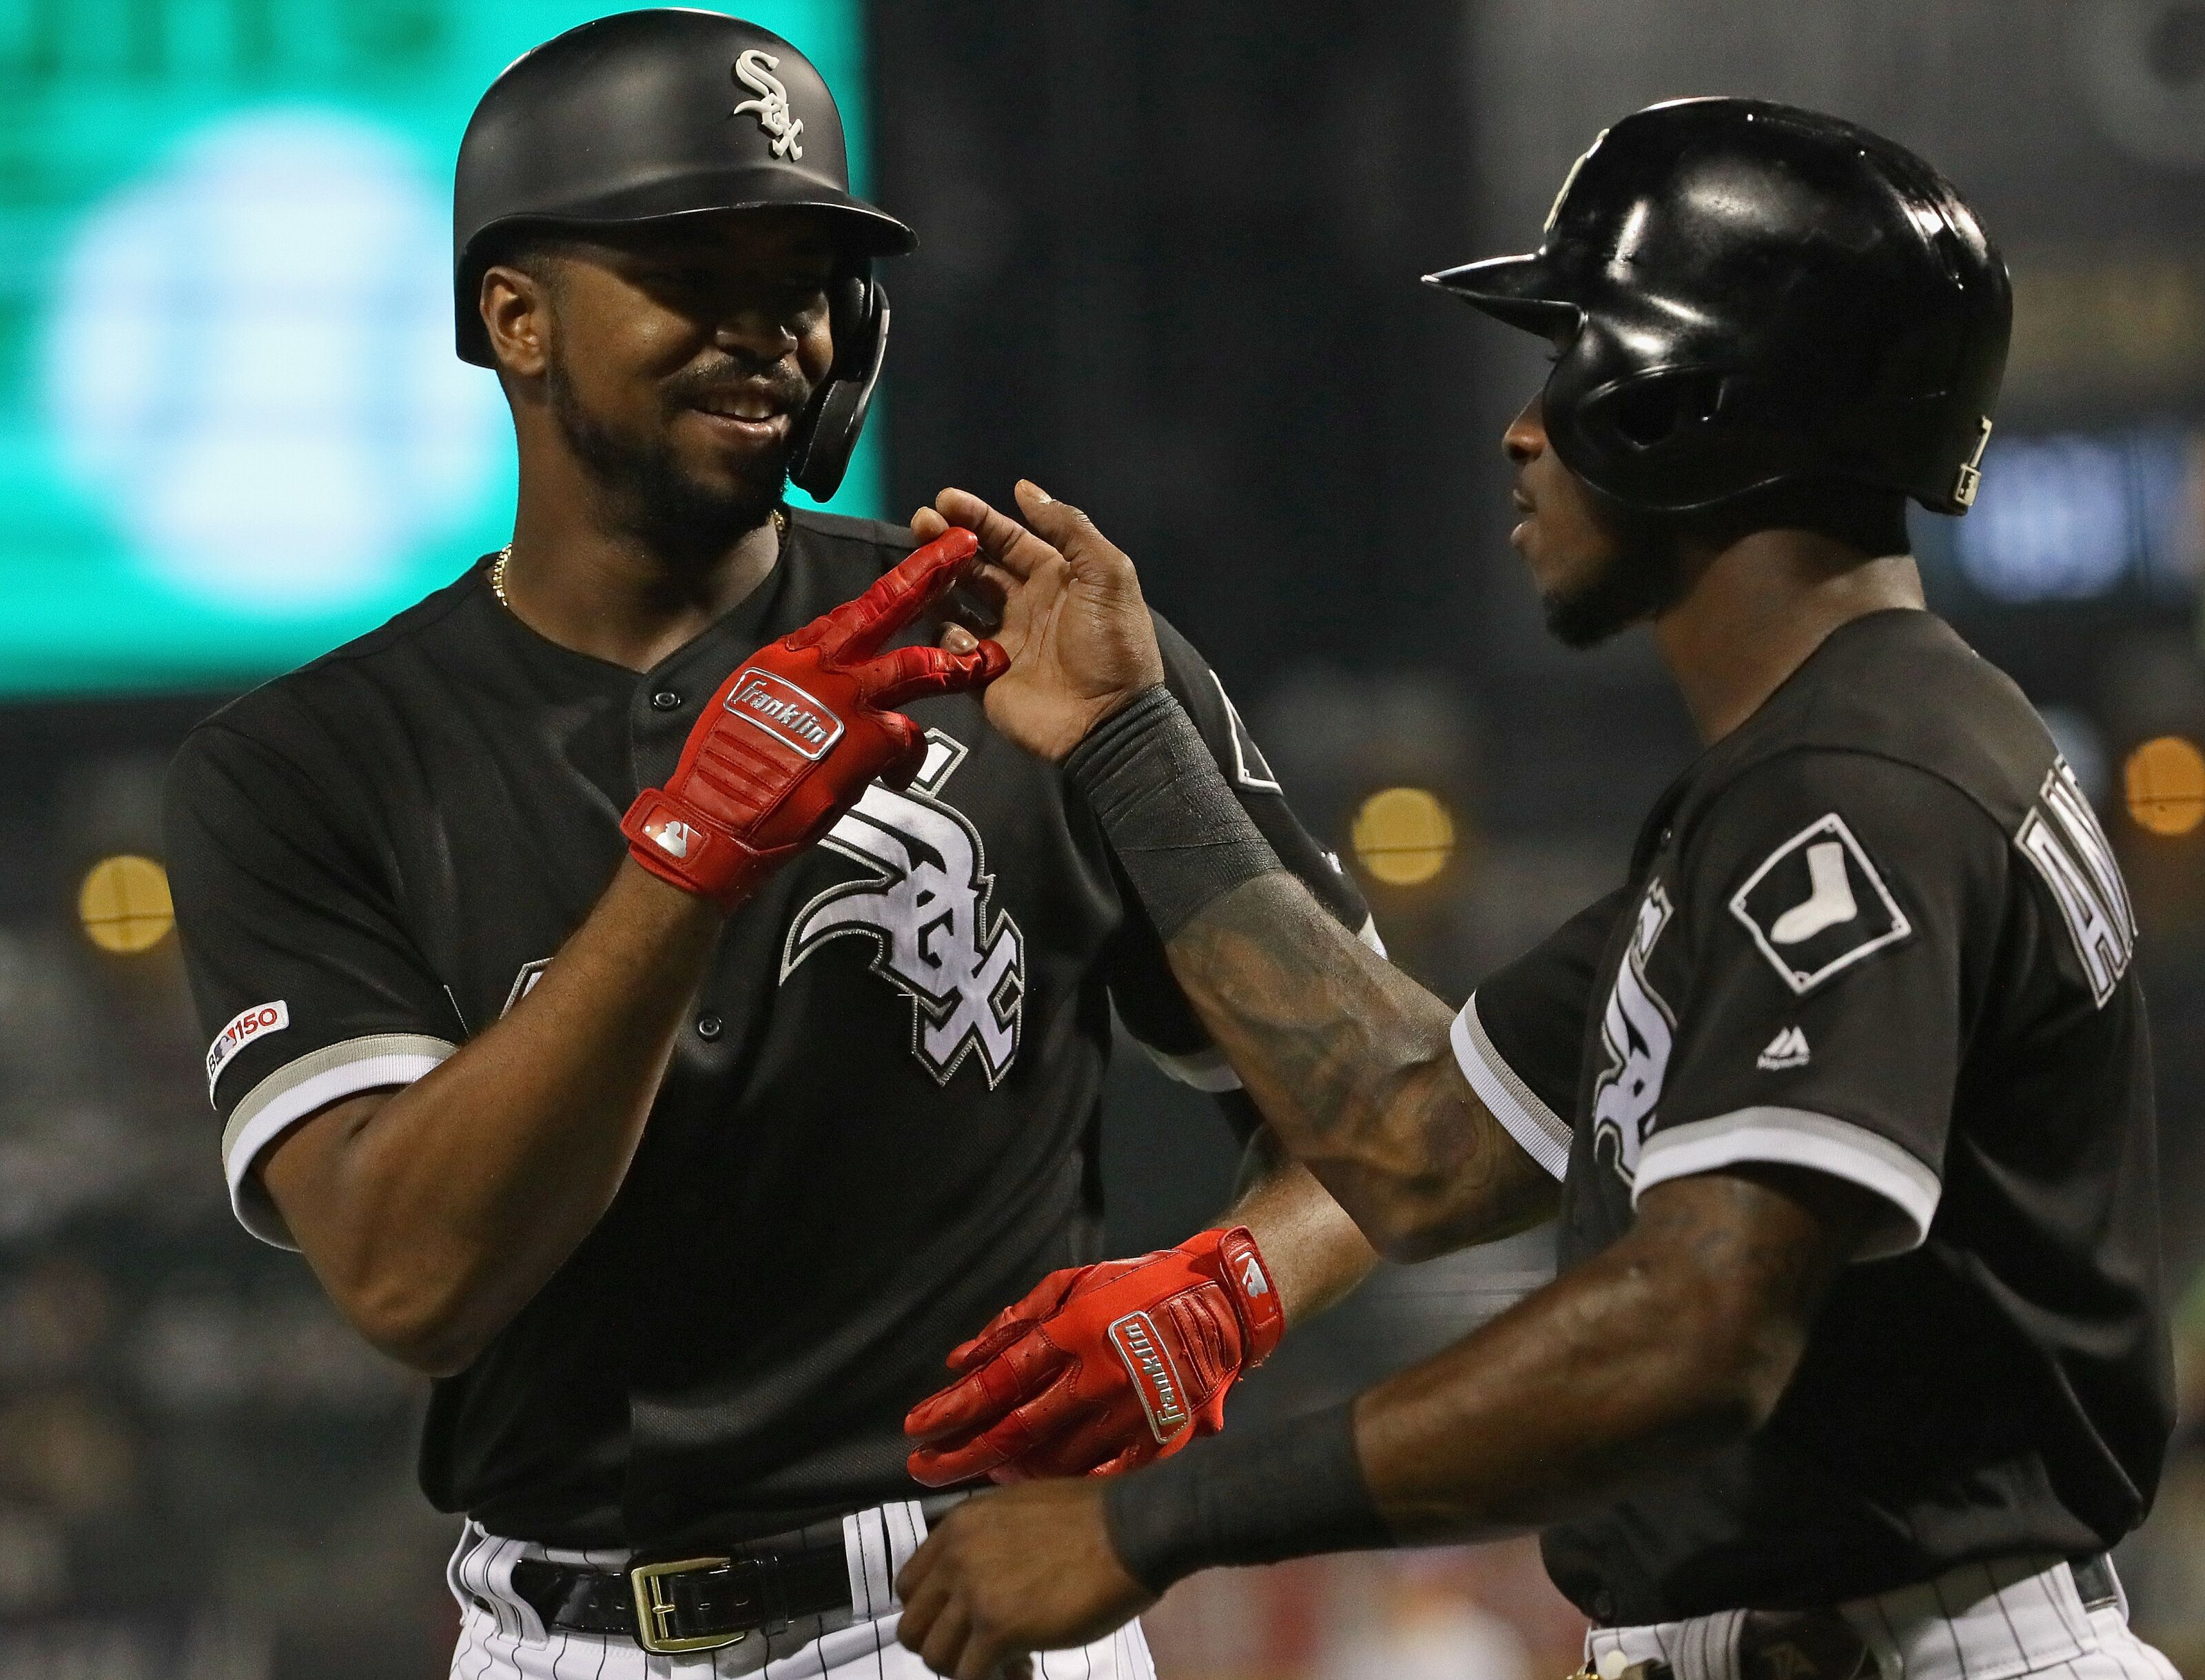 Chicago White Sox: Tim Anderson has big night in Minnesota